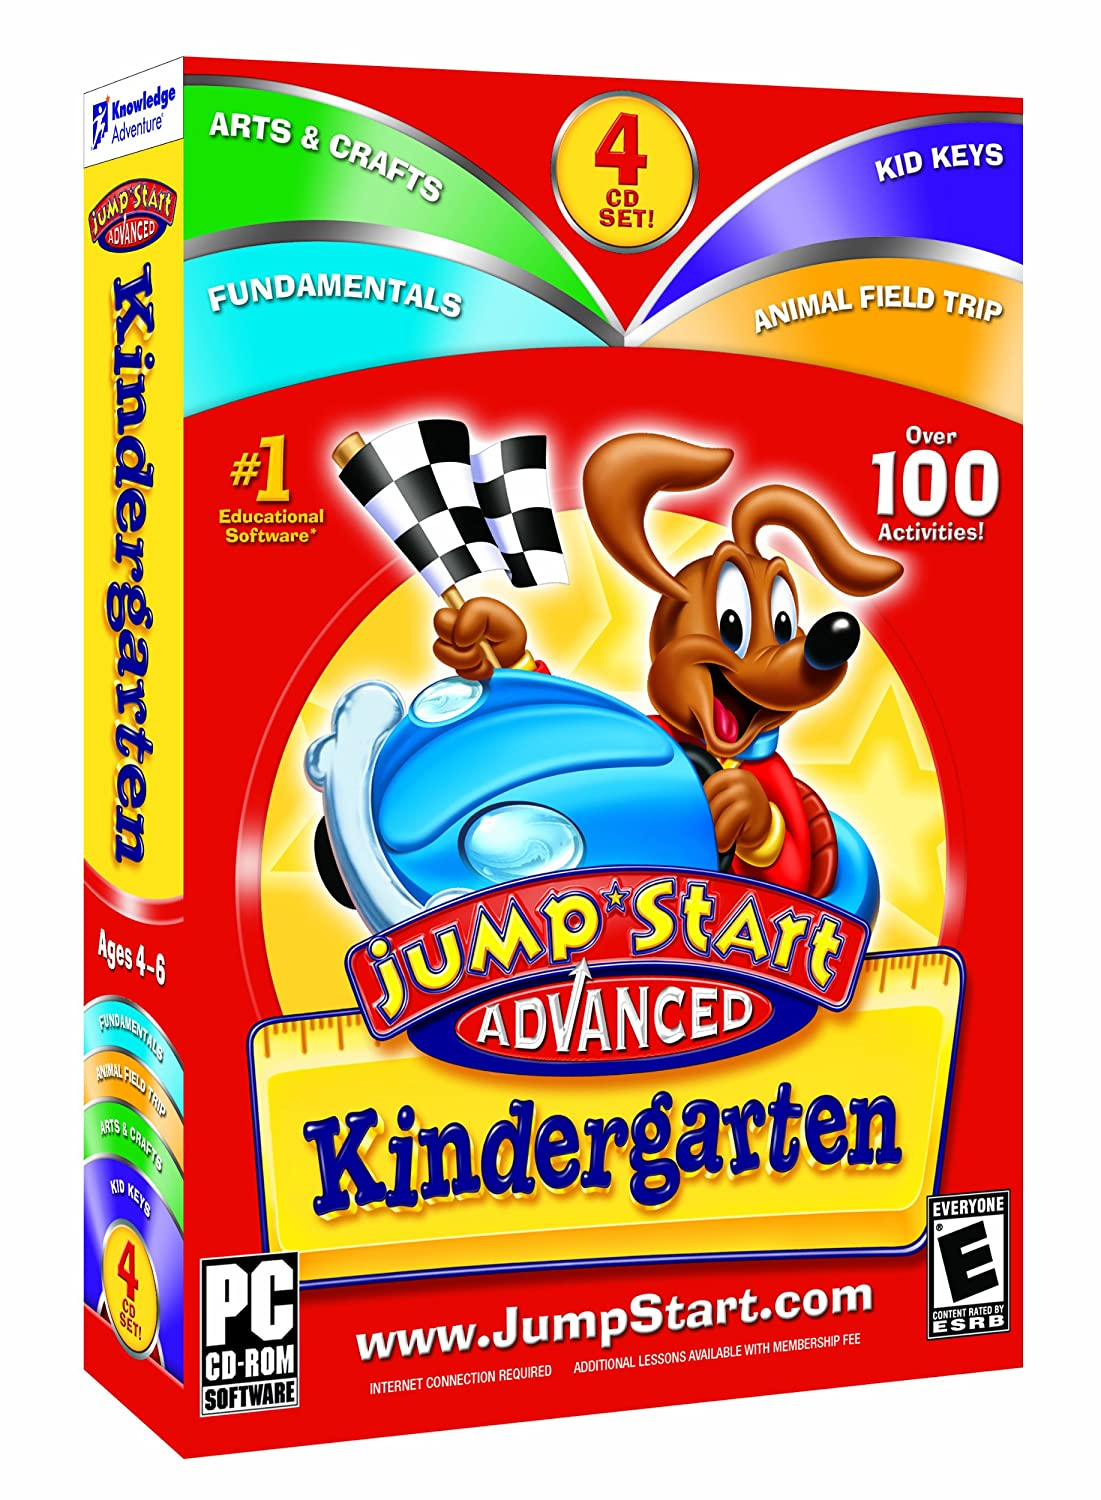 Knowledge adventure inc jumpstart advanced 1st grade v3.0 reading booster expert spelling sm box